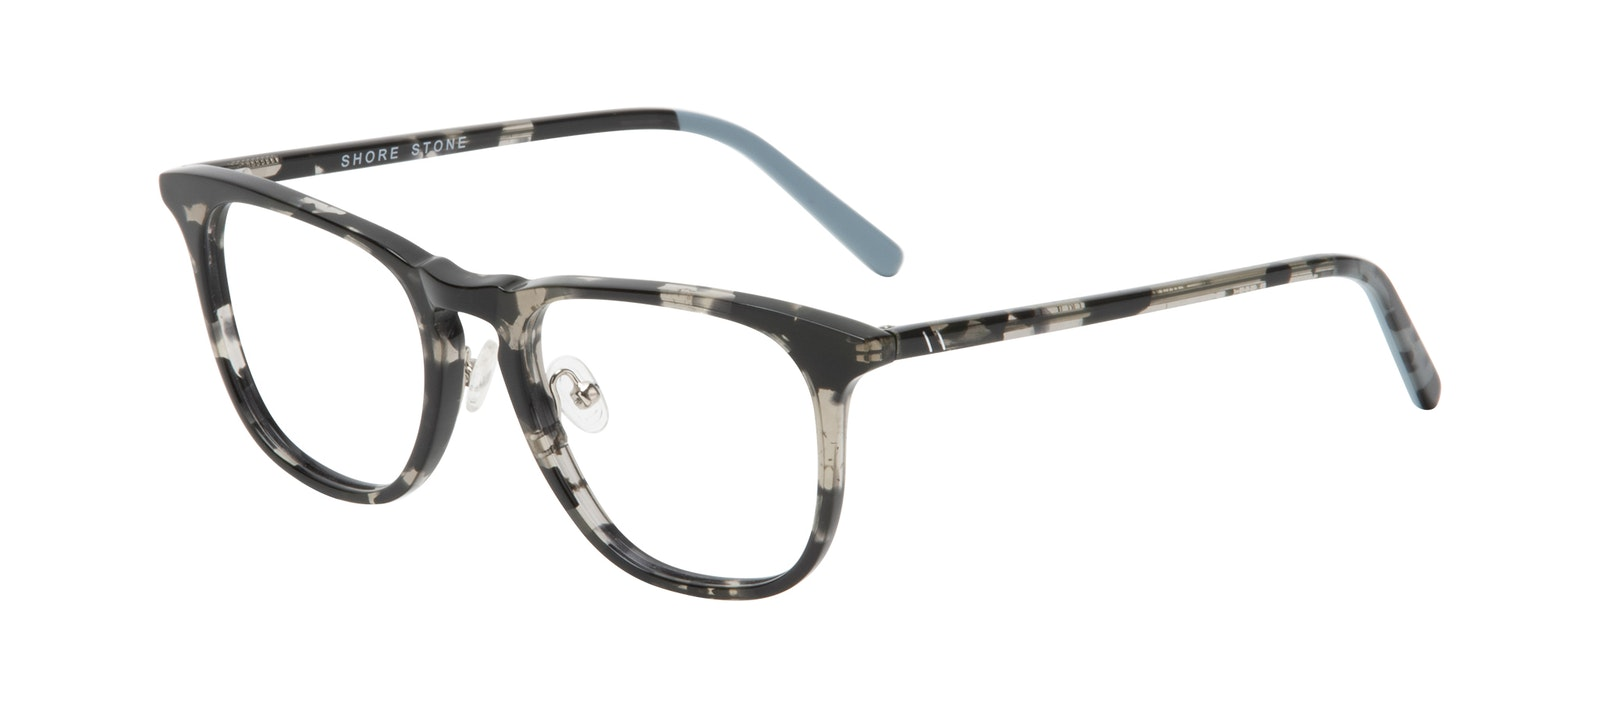 Affordable Fashion Glasses Square Eyeglasses Men Shore Stone Tilt